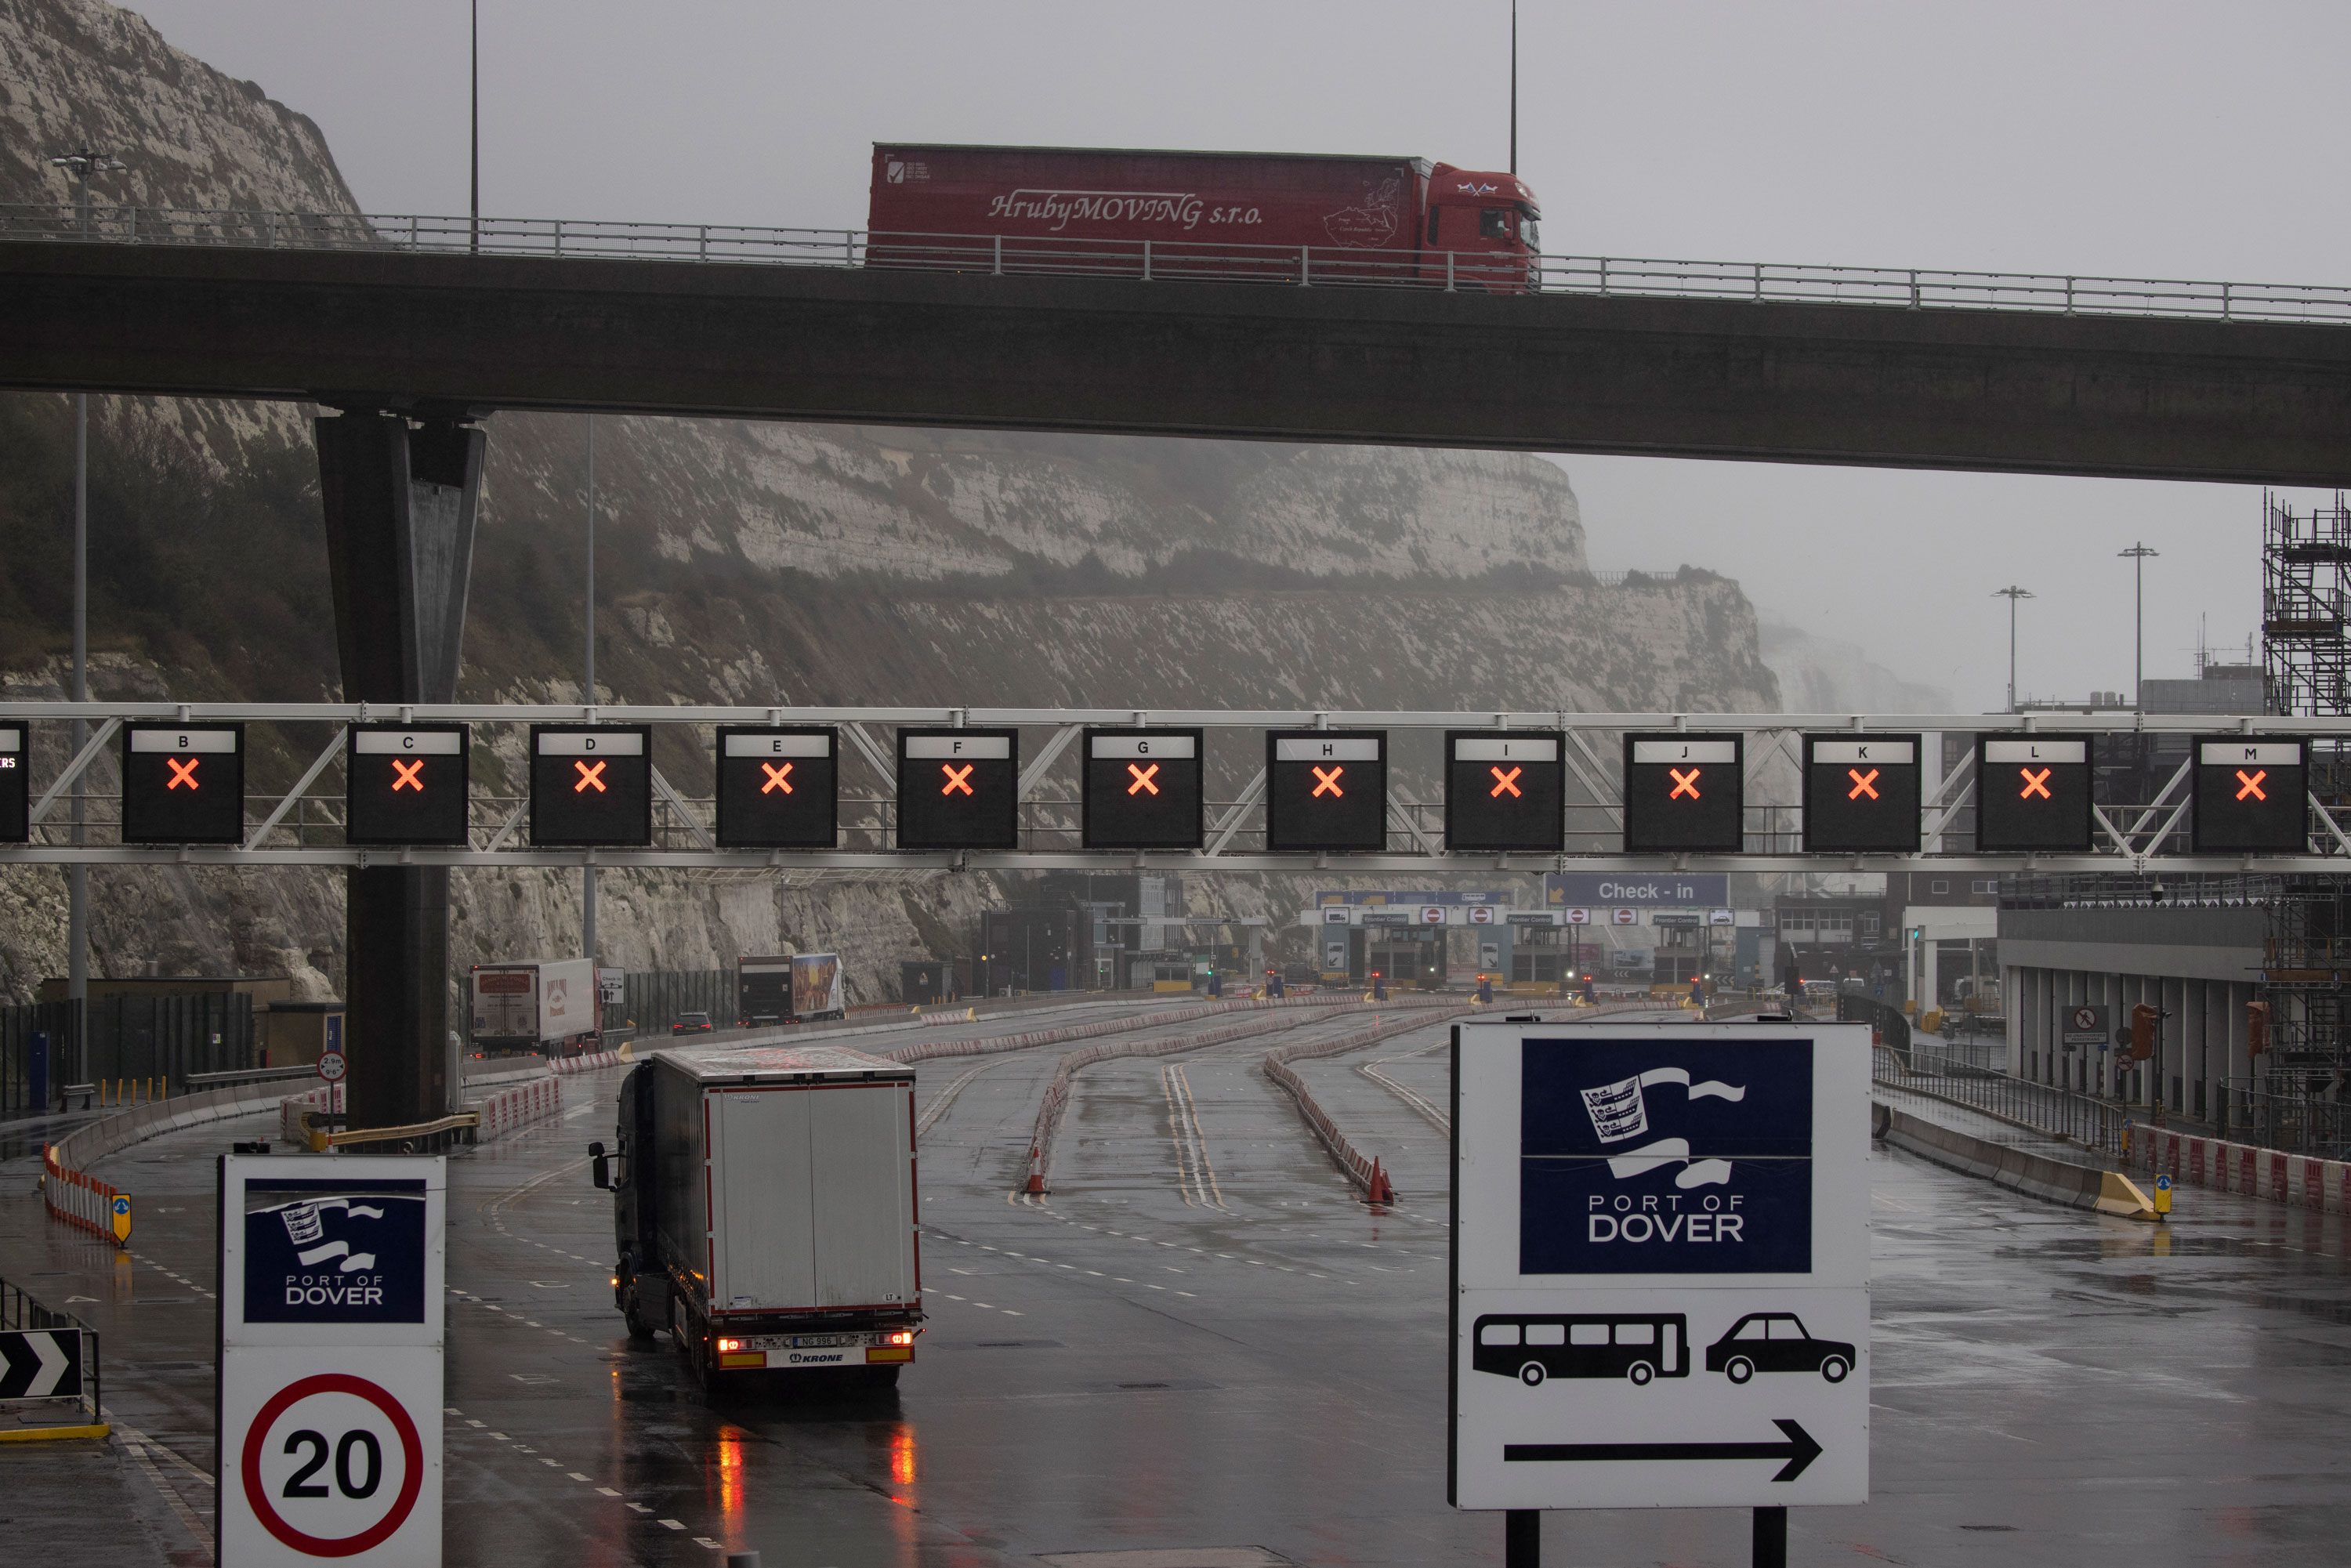 The Port of Dover in England is closed on December 21.